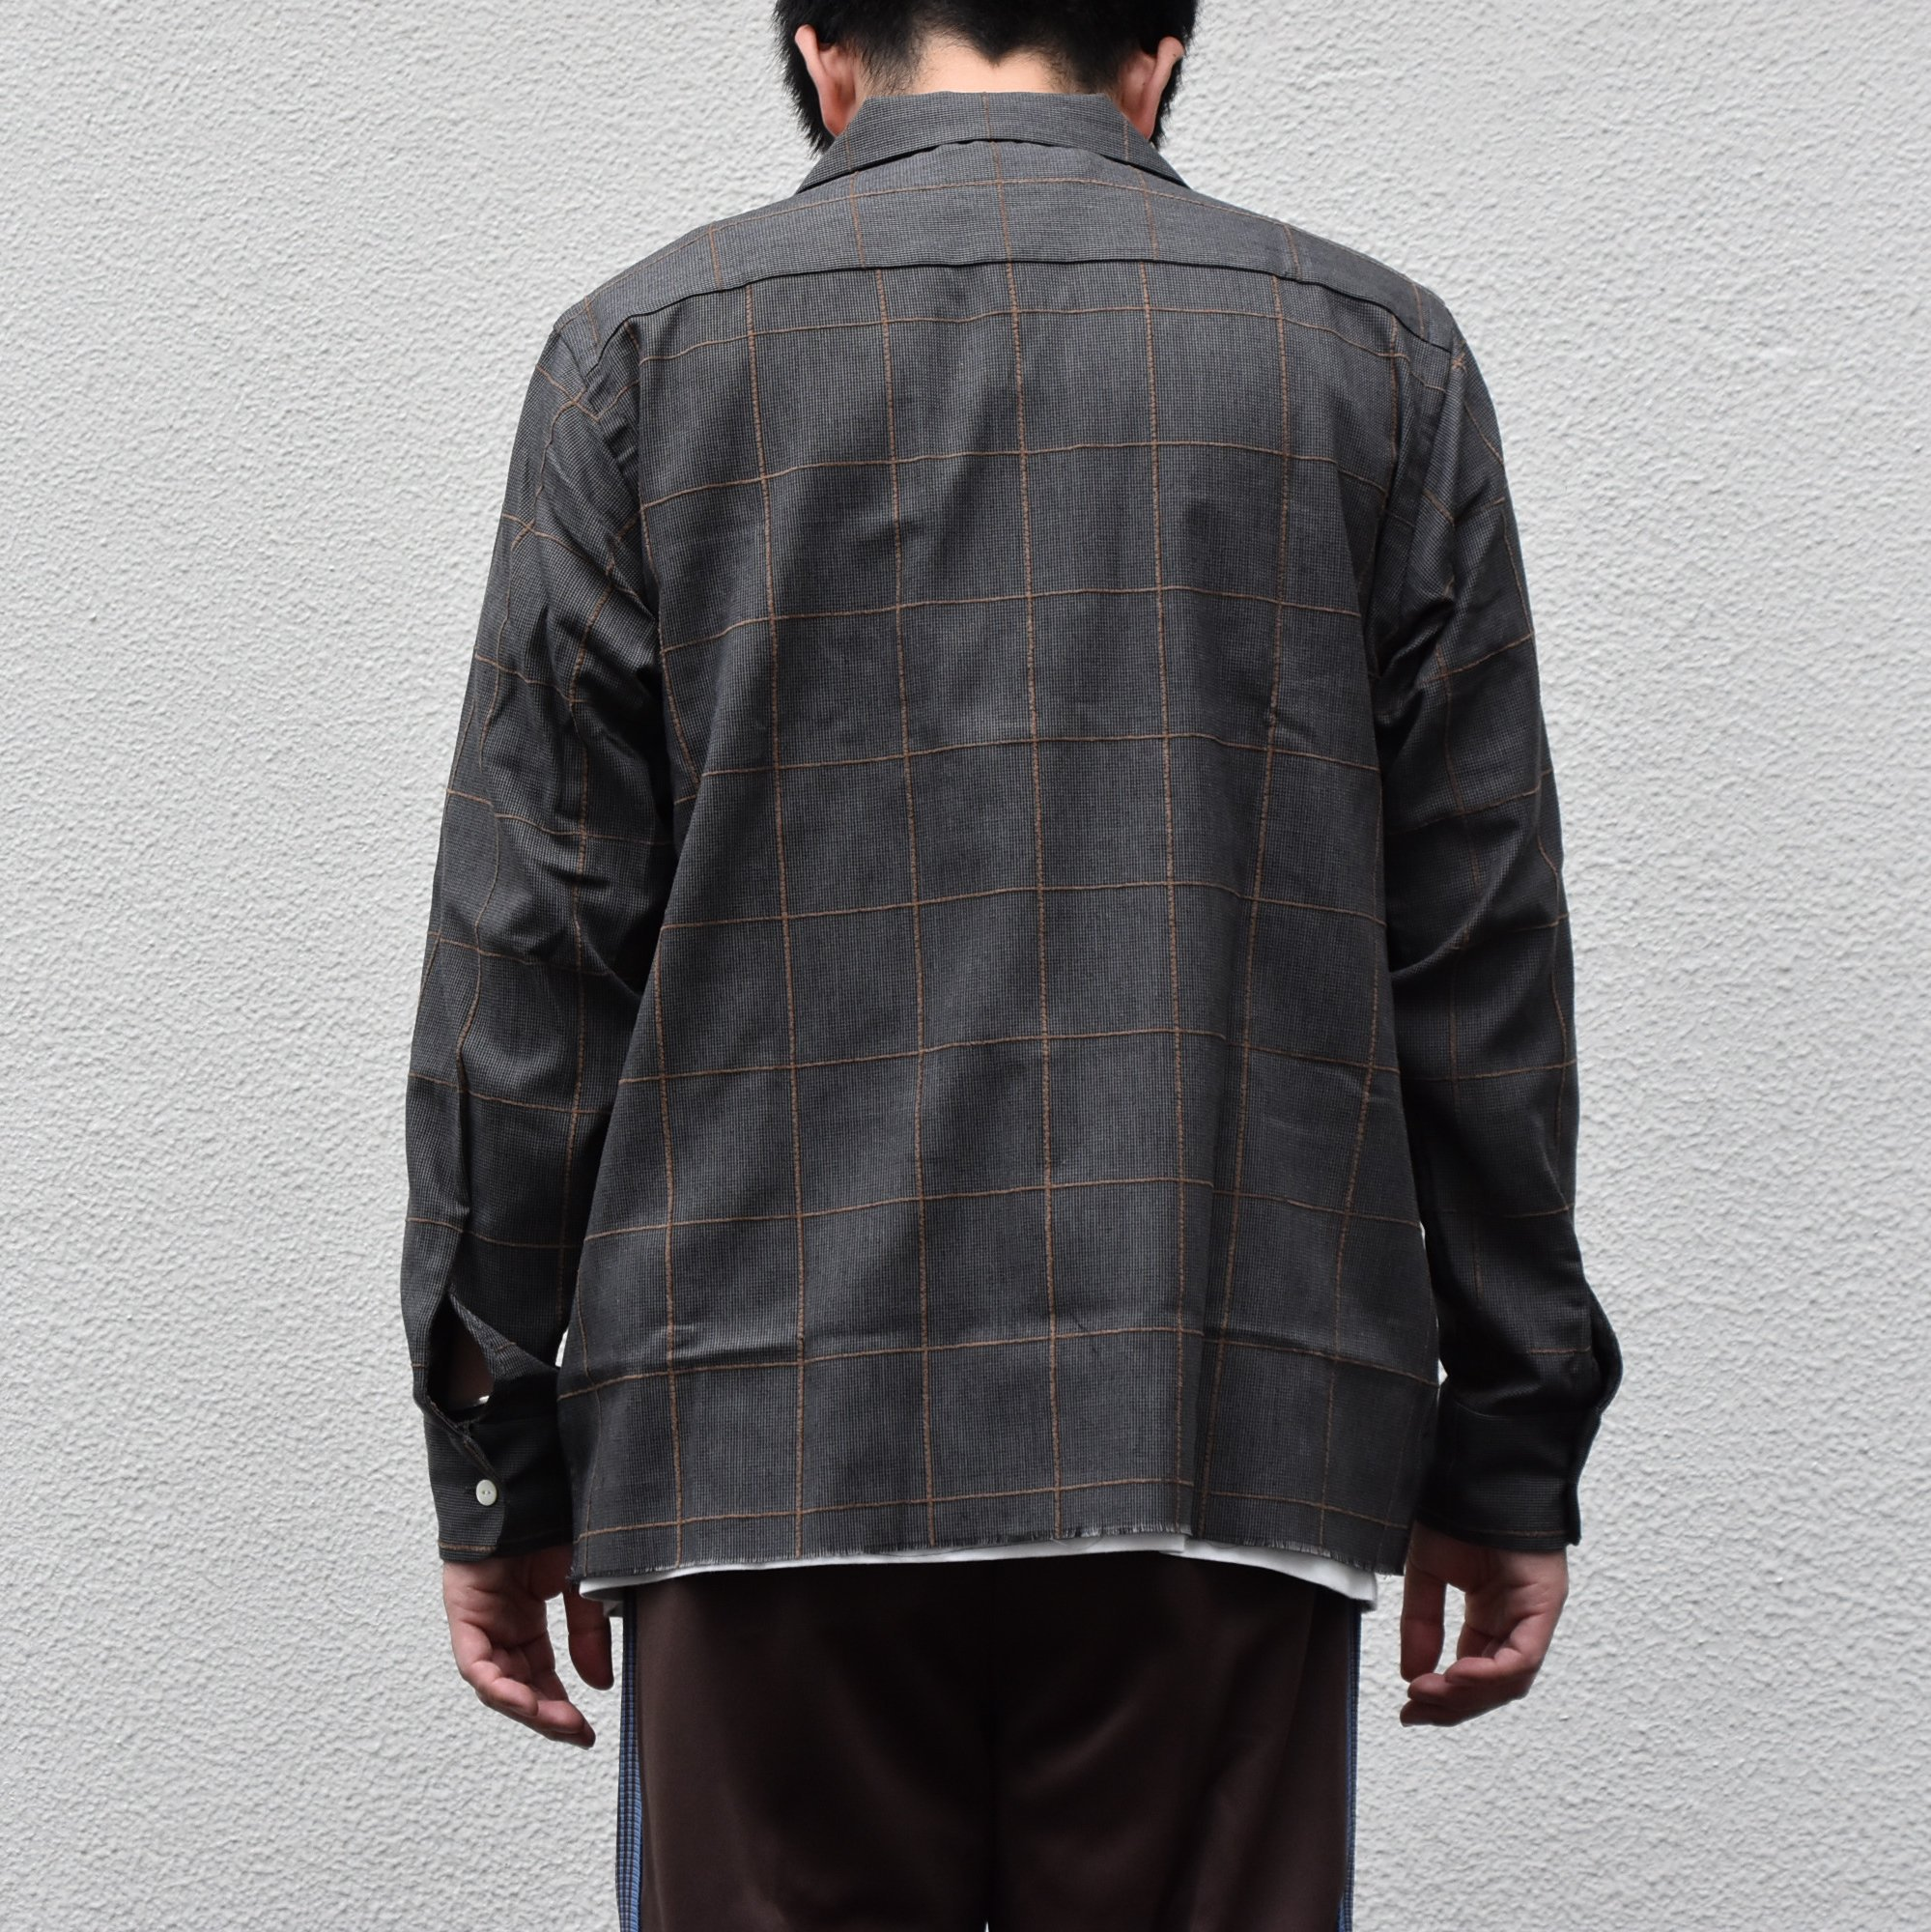 【2020】NEEDLES(ニードルス) C.O.B Classic Shirt -C/Pe/R Plaid Twill-GRAY #HM206(3)